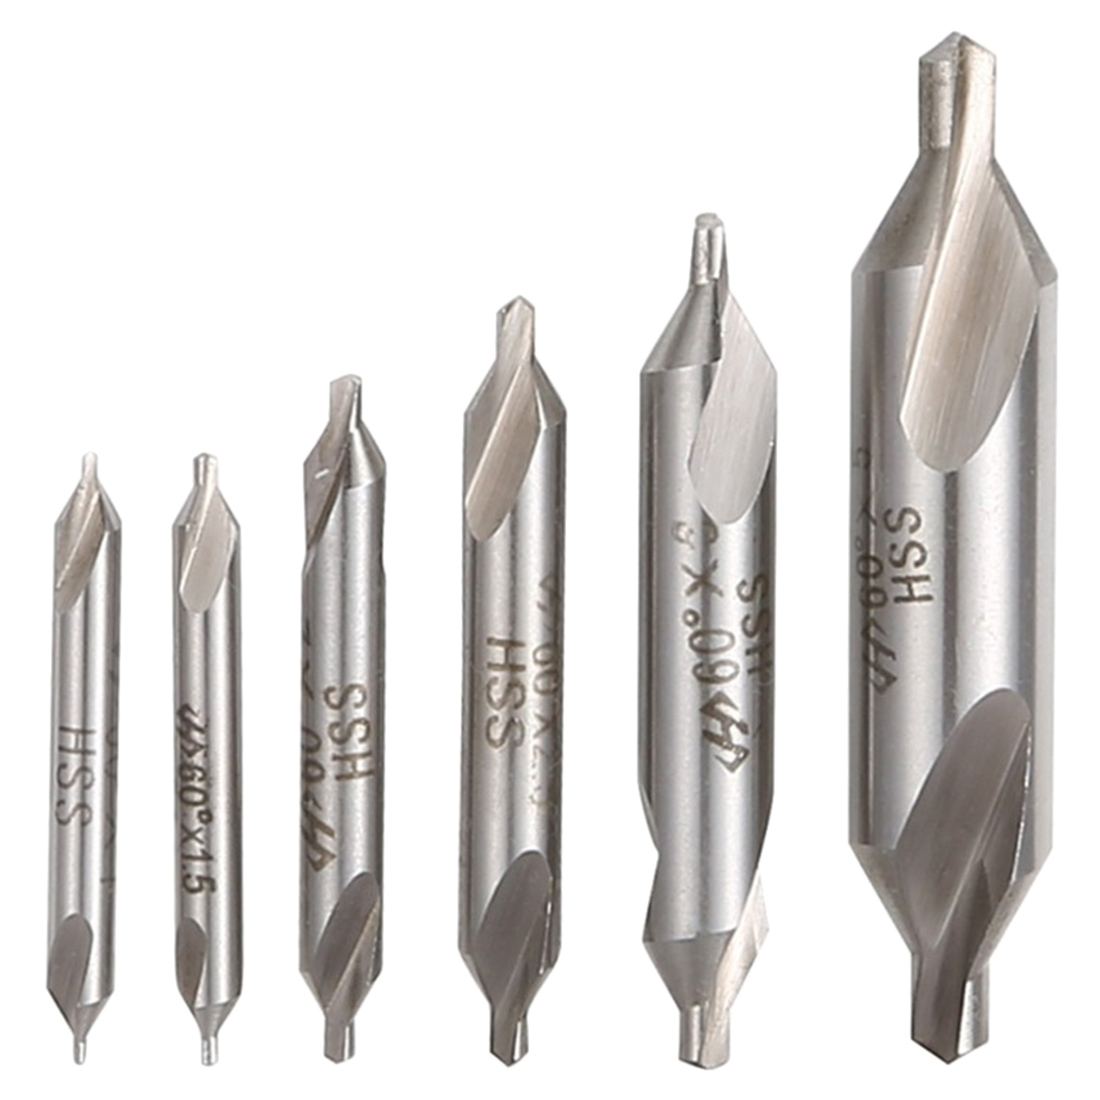 6pcs HSS High Speed Steel Center Drill Bits Set Precision Combined Countersinks Kit 60 Degree Angle 5/3/2.5/2/1.5/1mm For Lathe